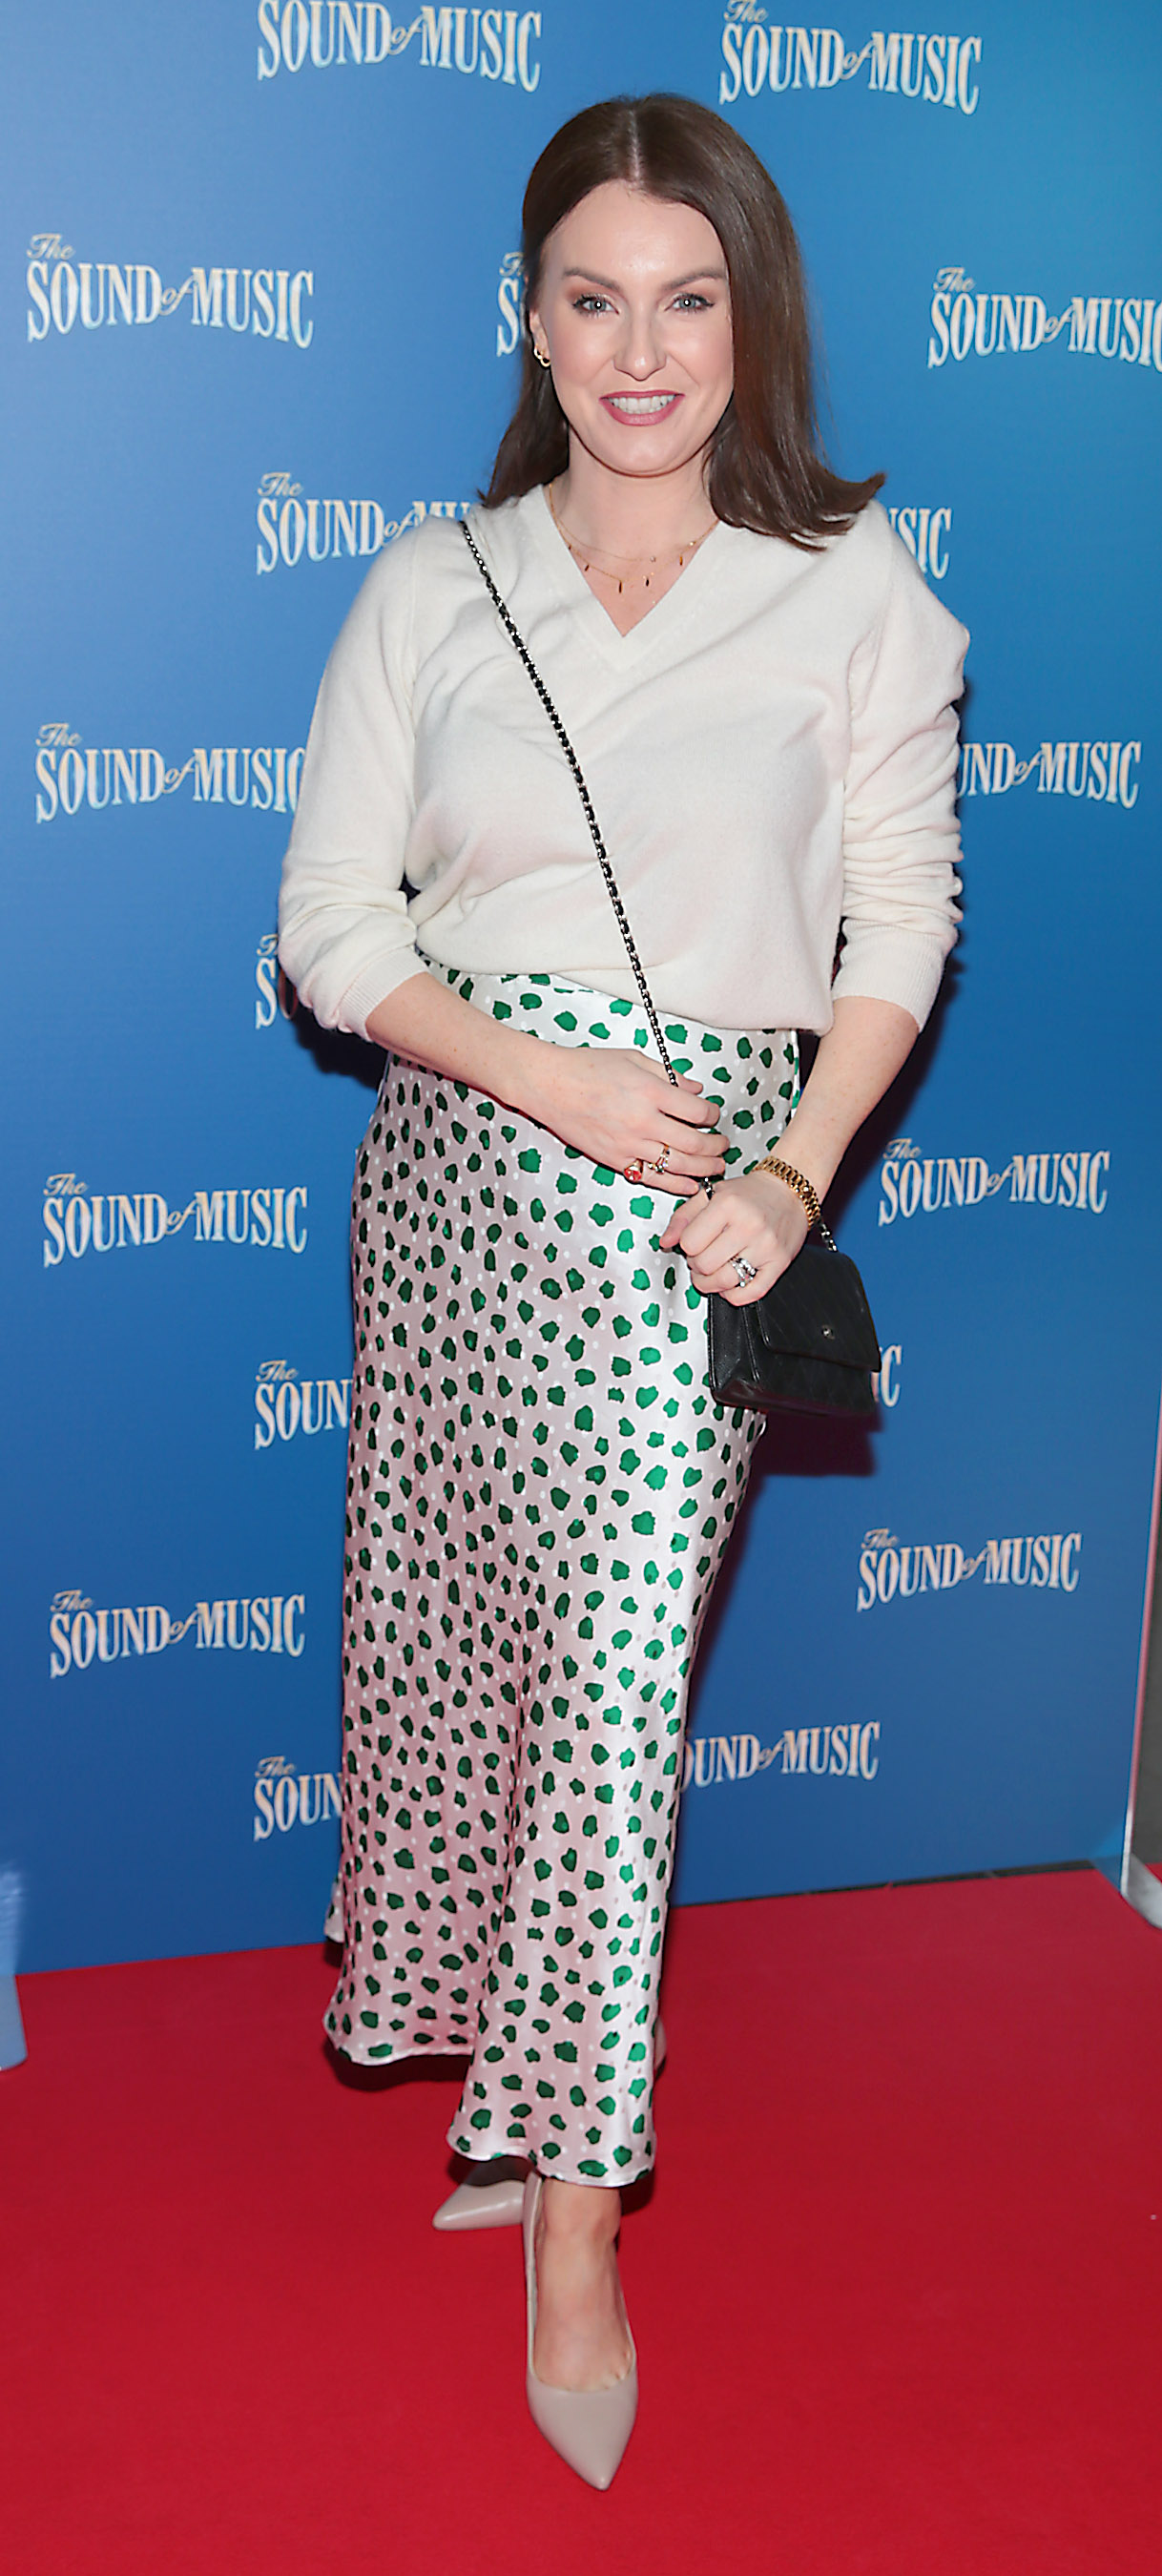 Mairead Ronan pictured at the opening night of The Sound of Music at the Bord Gais Energy Theatre, Dublin. Pic Brian McEvoy